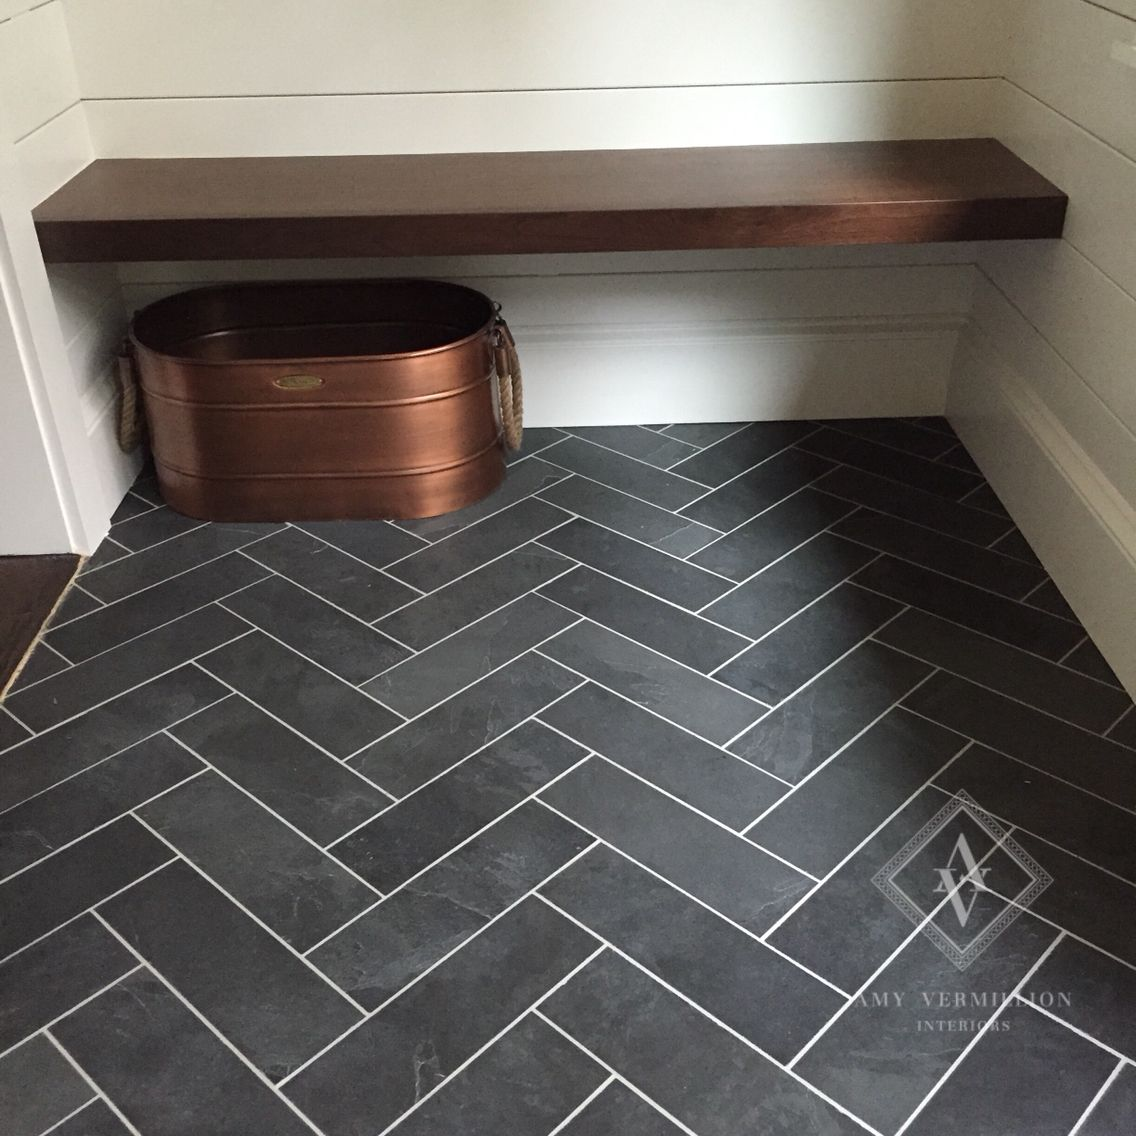 Amy vermillions home hand cut herringbone slate tile floor in amy vermillions home hand cut herringbone slate tile floor in mudroom ship lap walls dailygadgetfo Choice Image